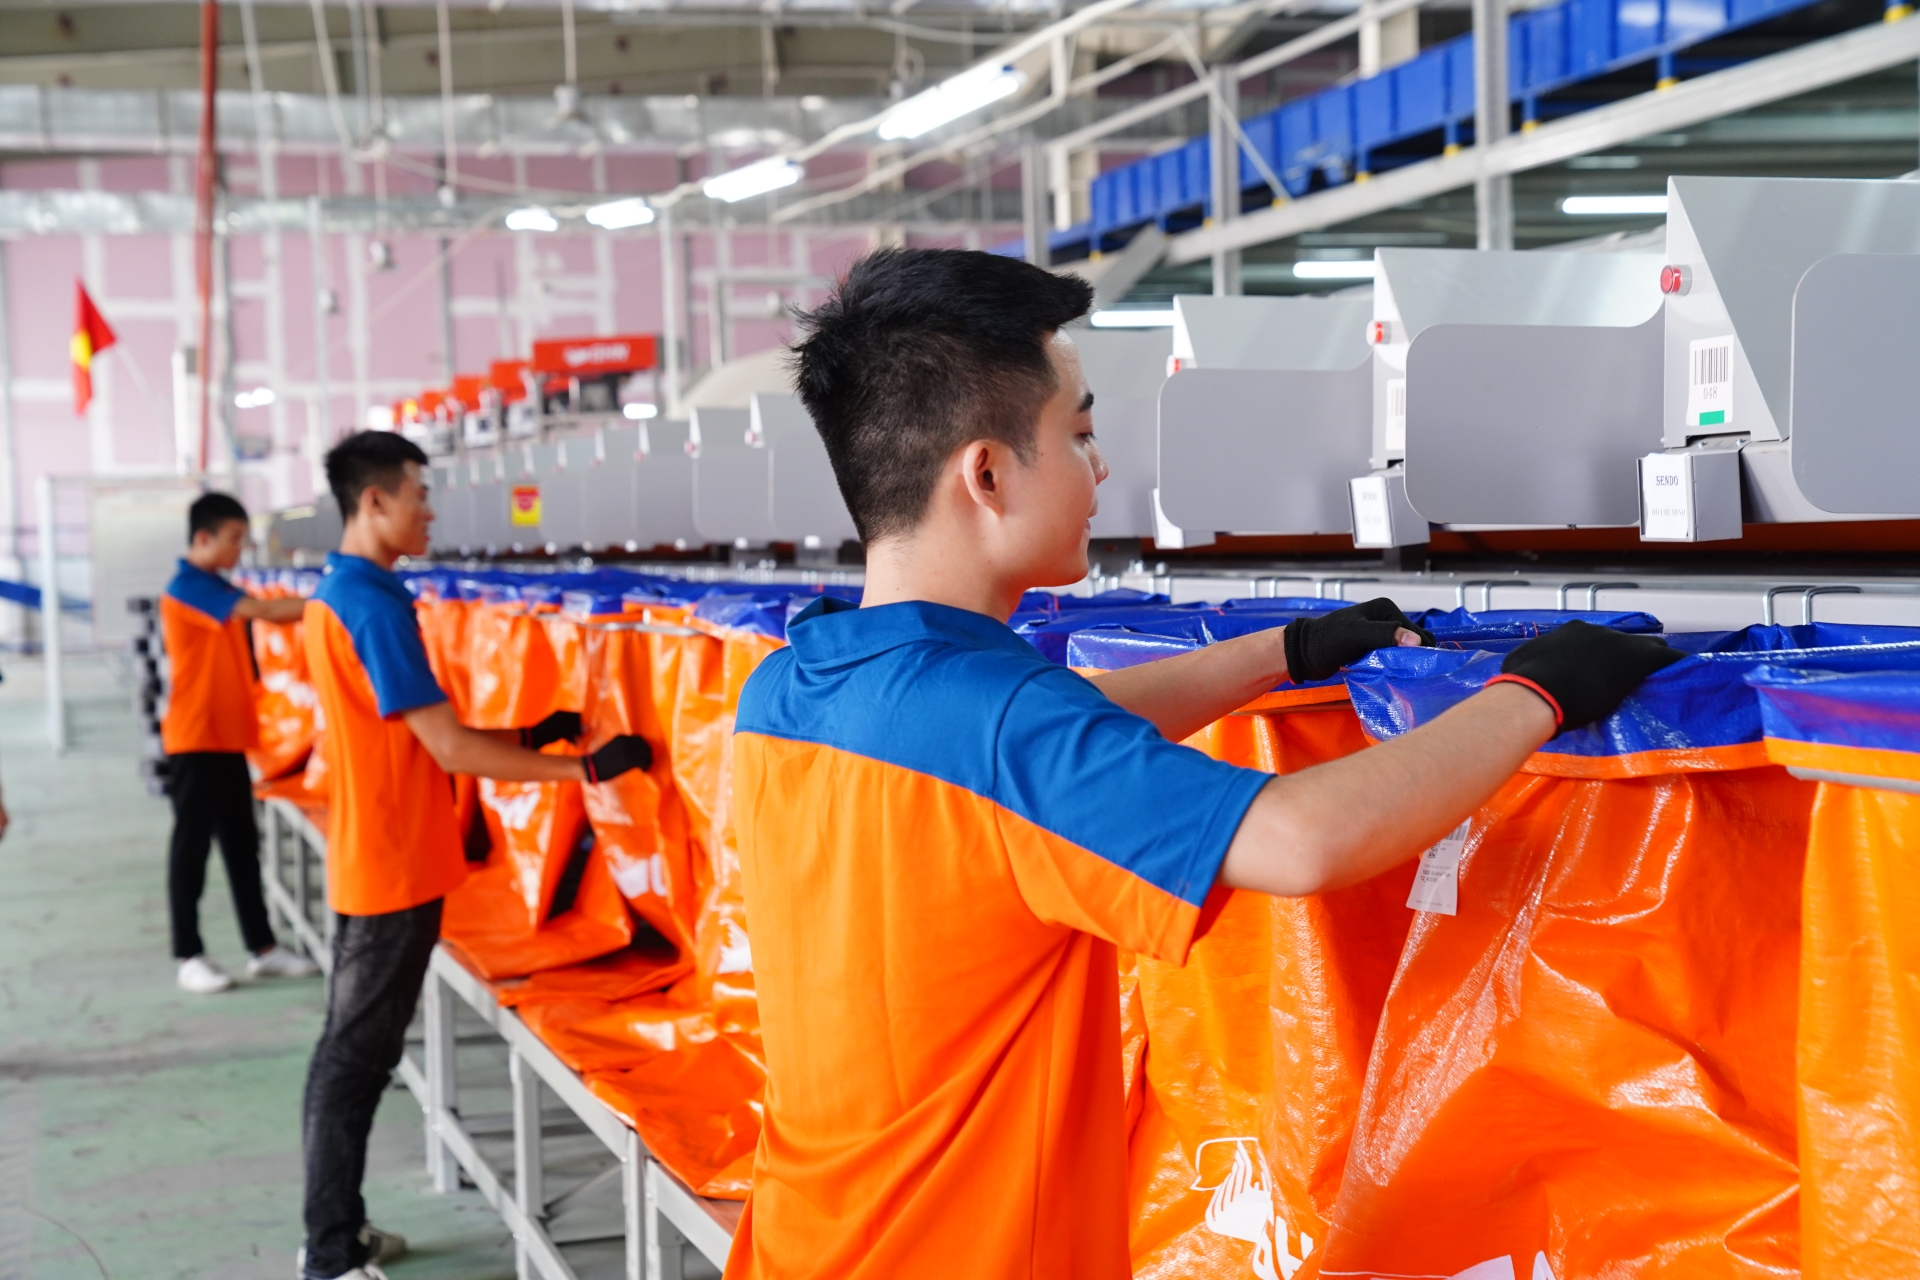 GHN launches automated sortation system in Hanoi